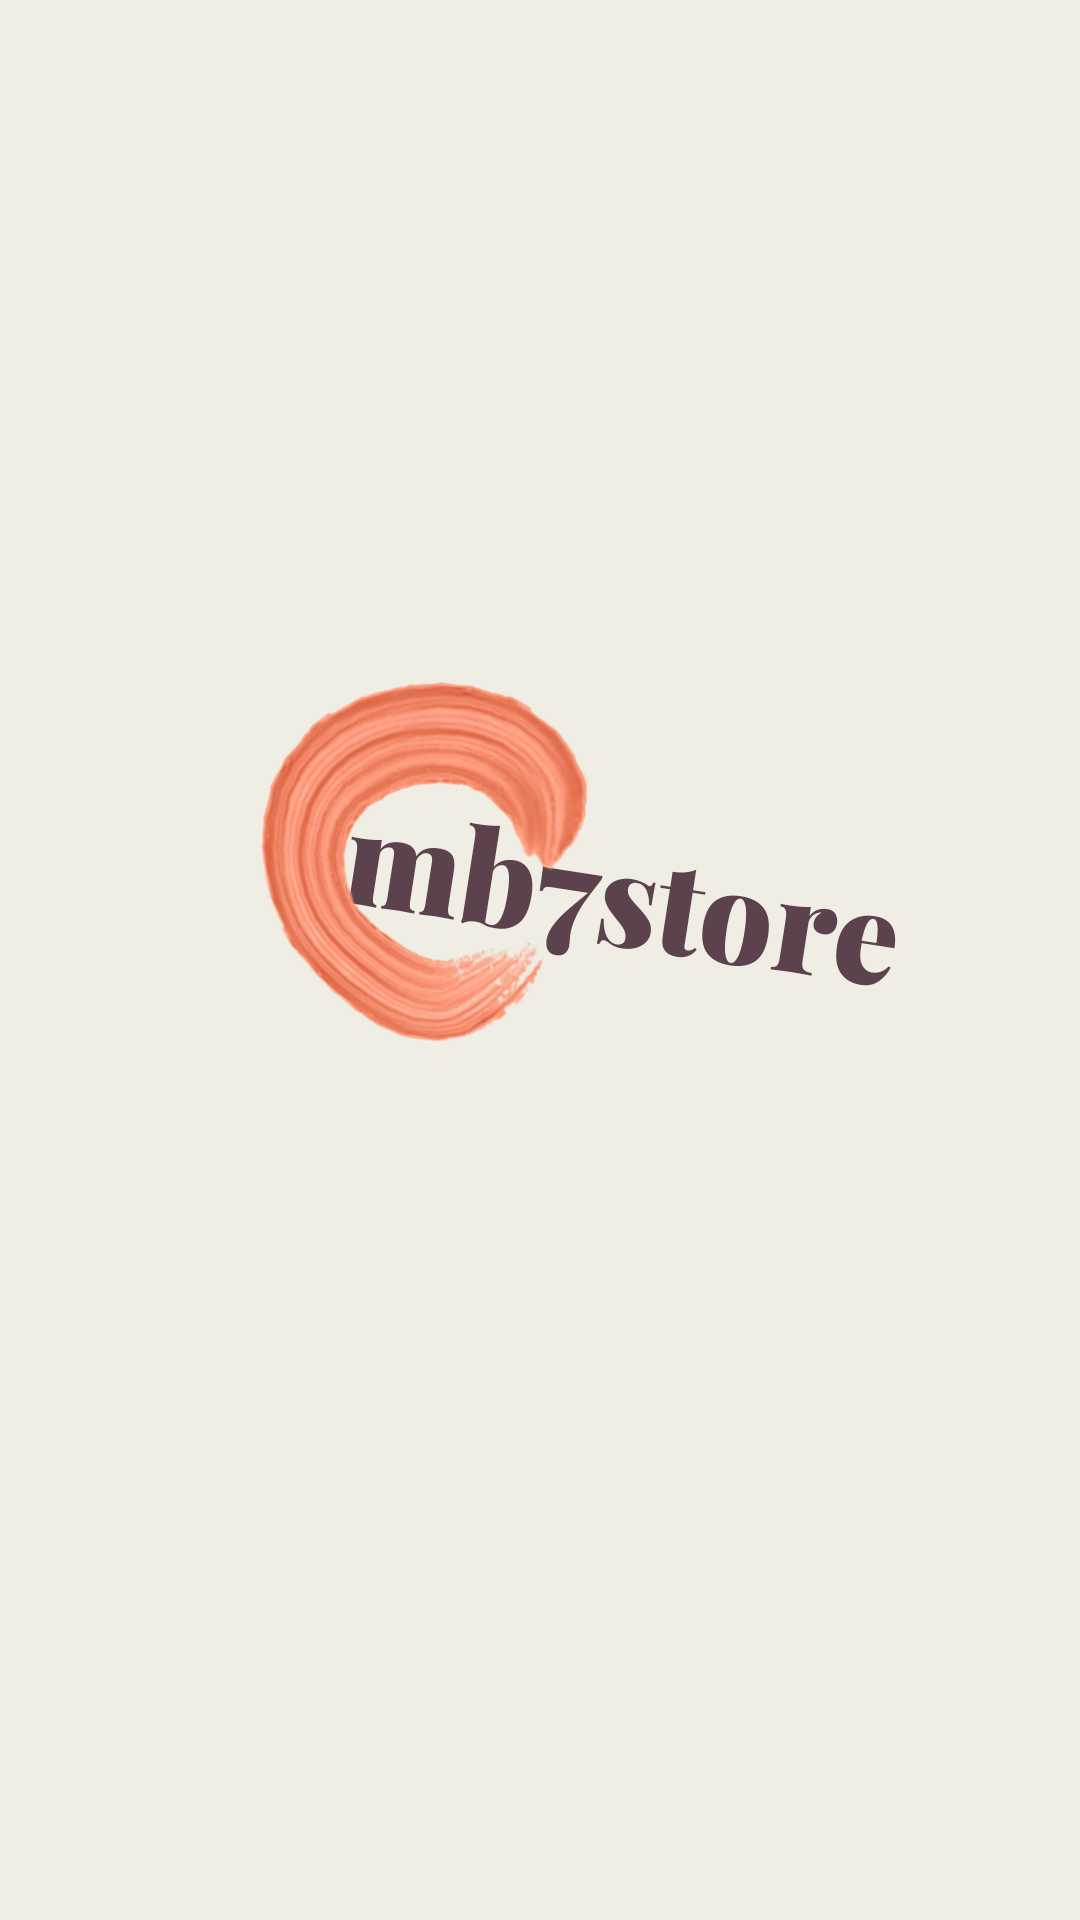 mb7store